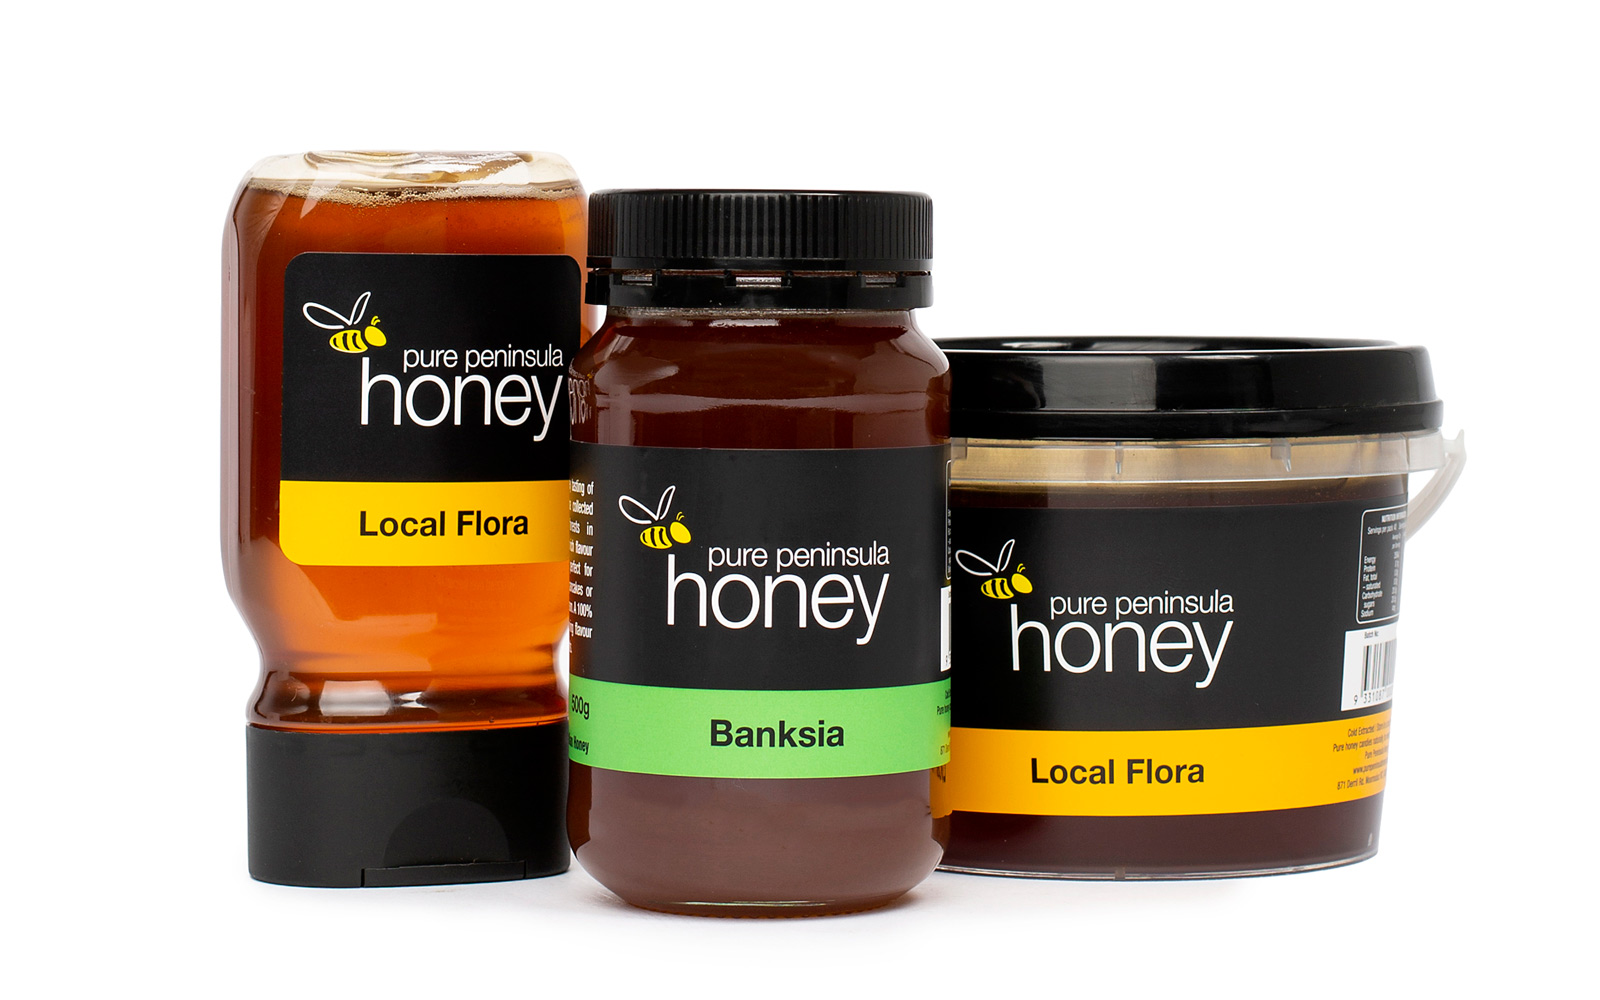 Honey Jar FMCG Product Label by Peacock Bros